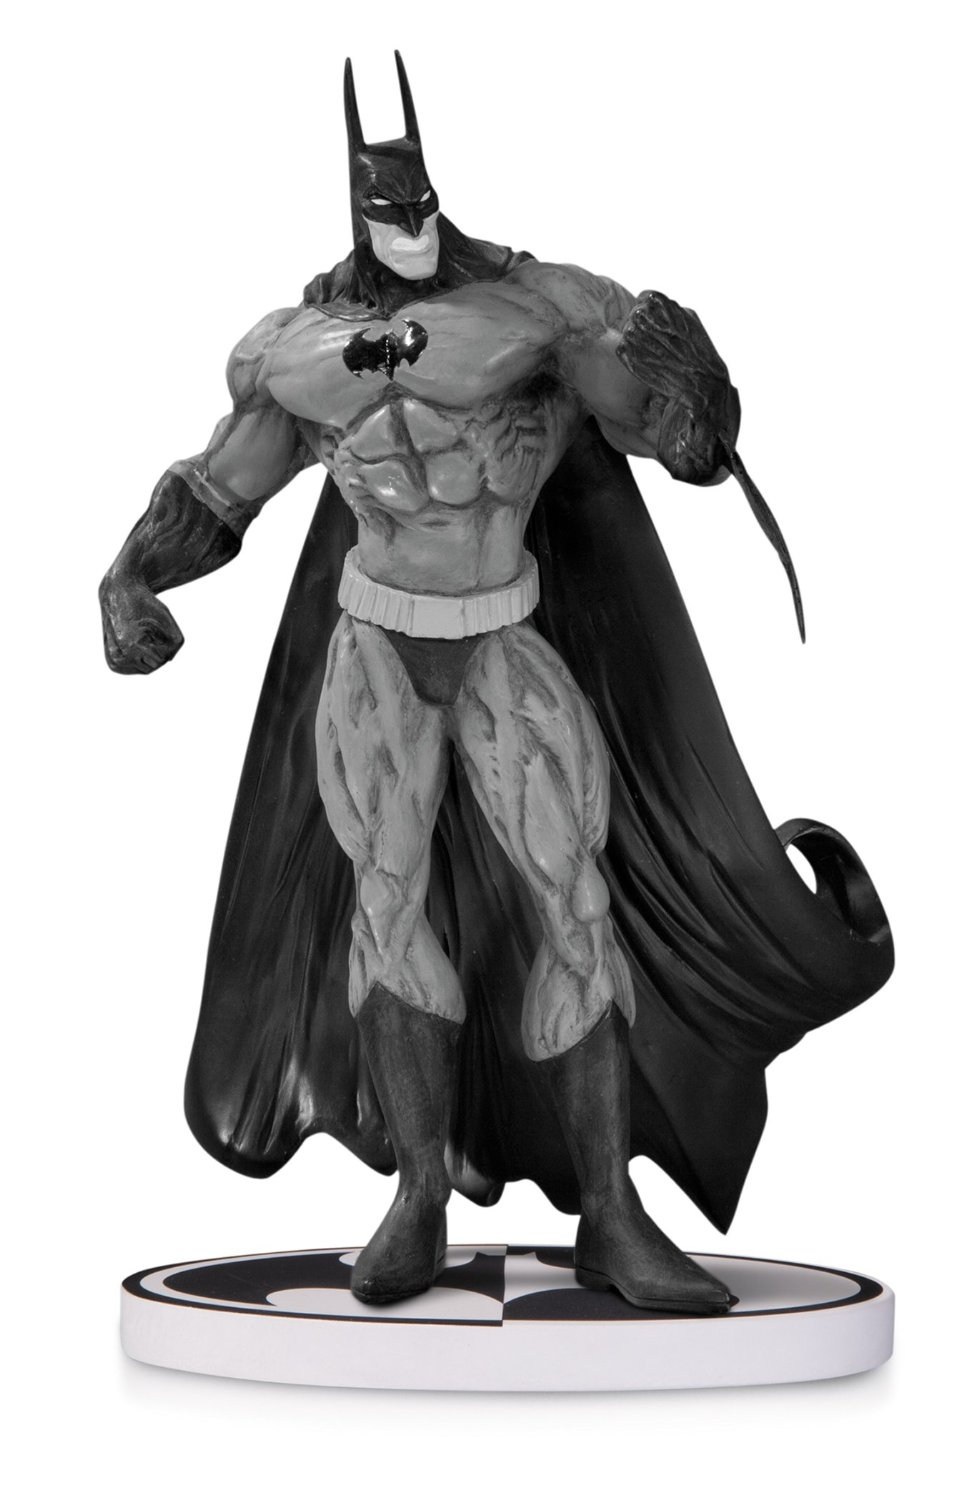 Batman Black & White Statue by Simon Bisley